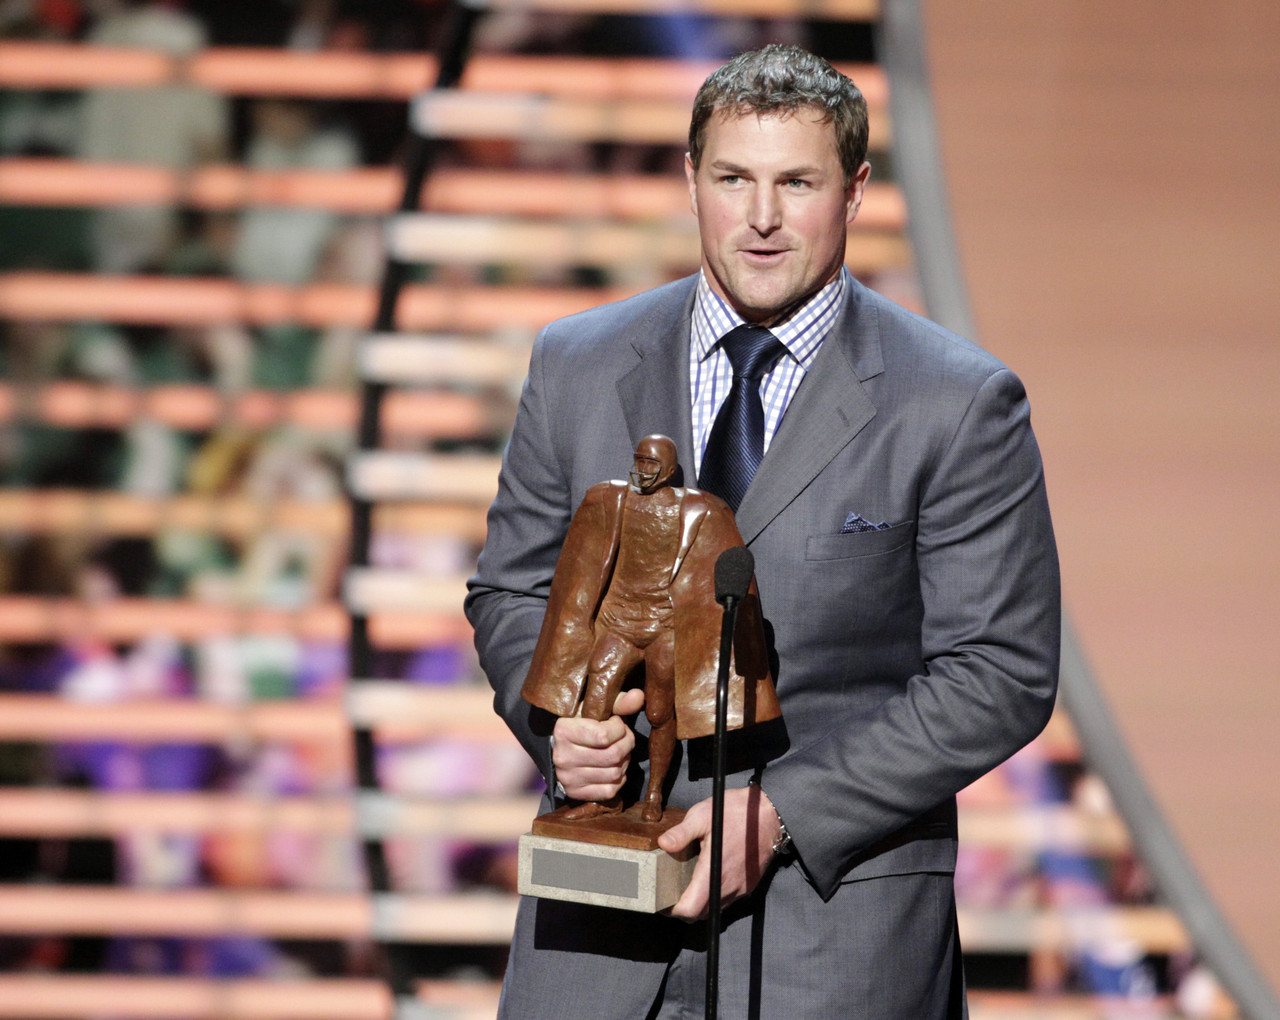 Jason-Witten-Wins-NFL-Man-Of-The-Year-Award-2